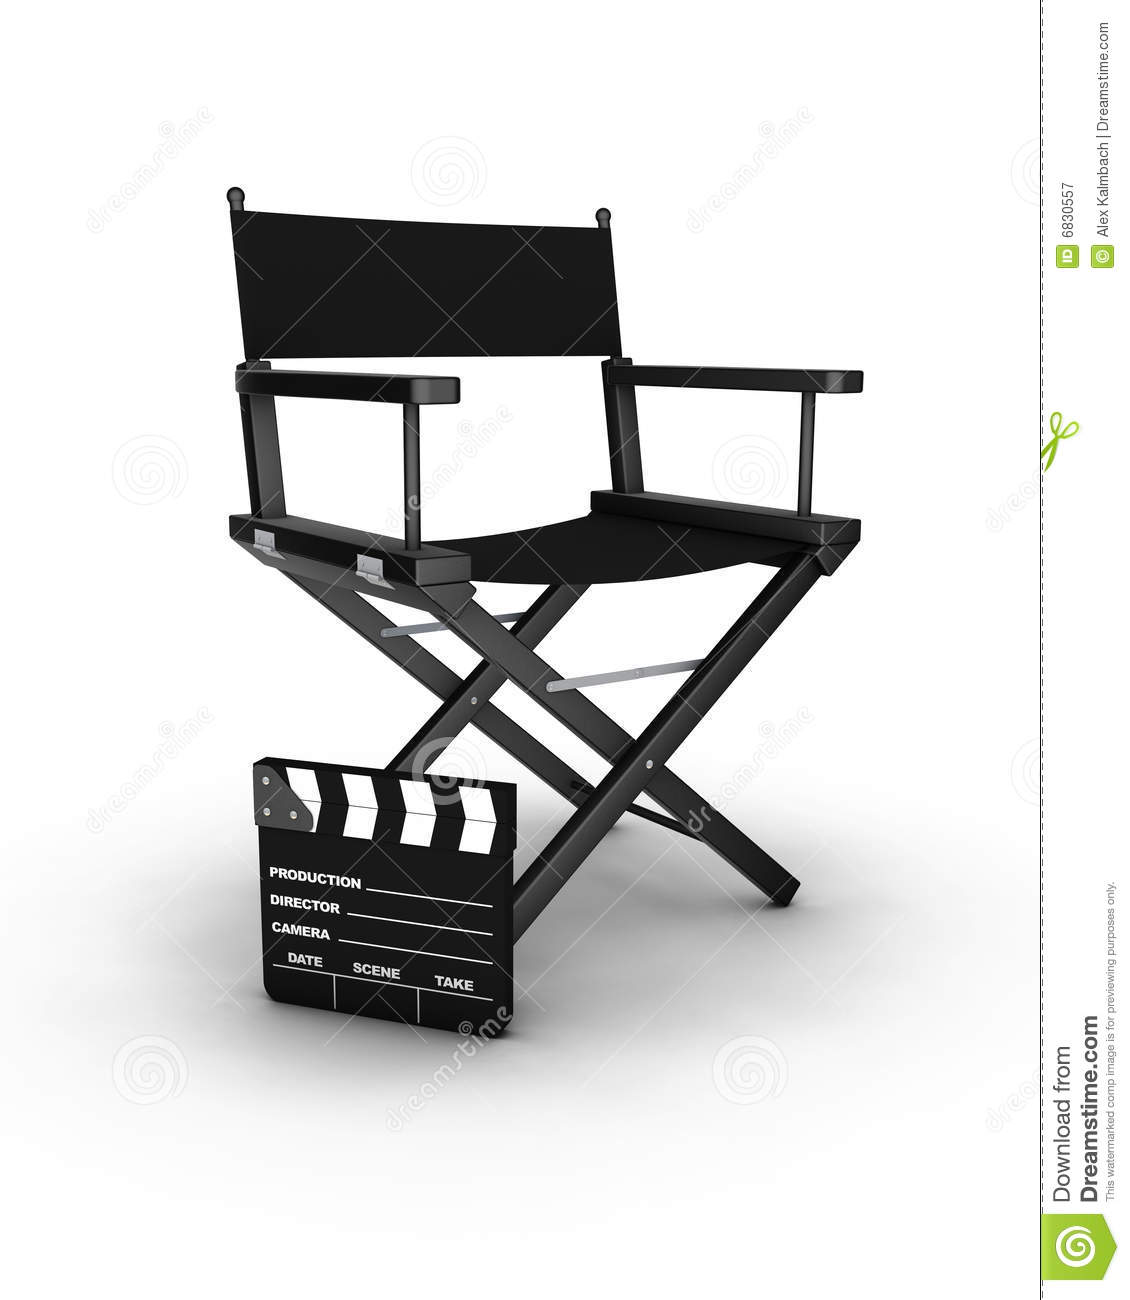 foldable chair plans peacock wicker for sale director's royalty free stock photography - image: 6830557